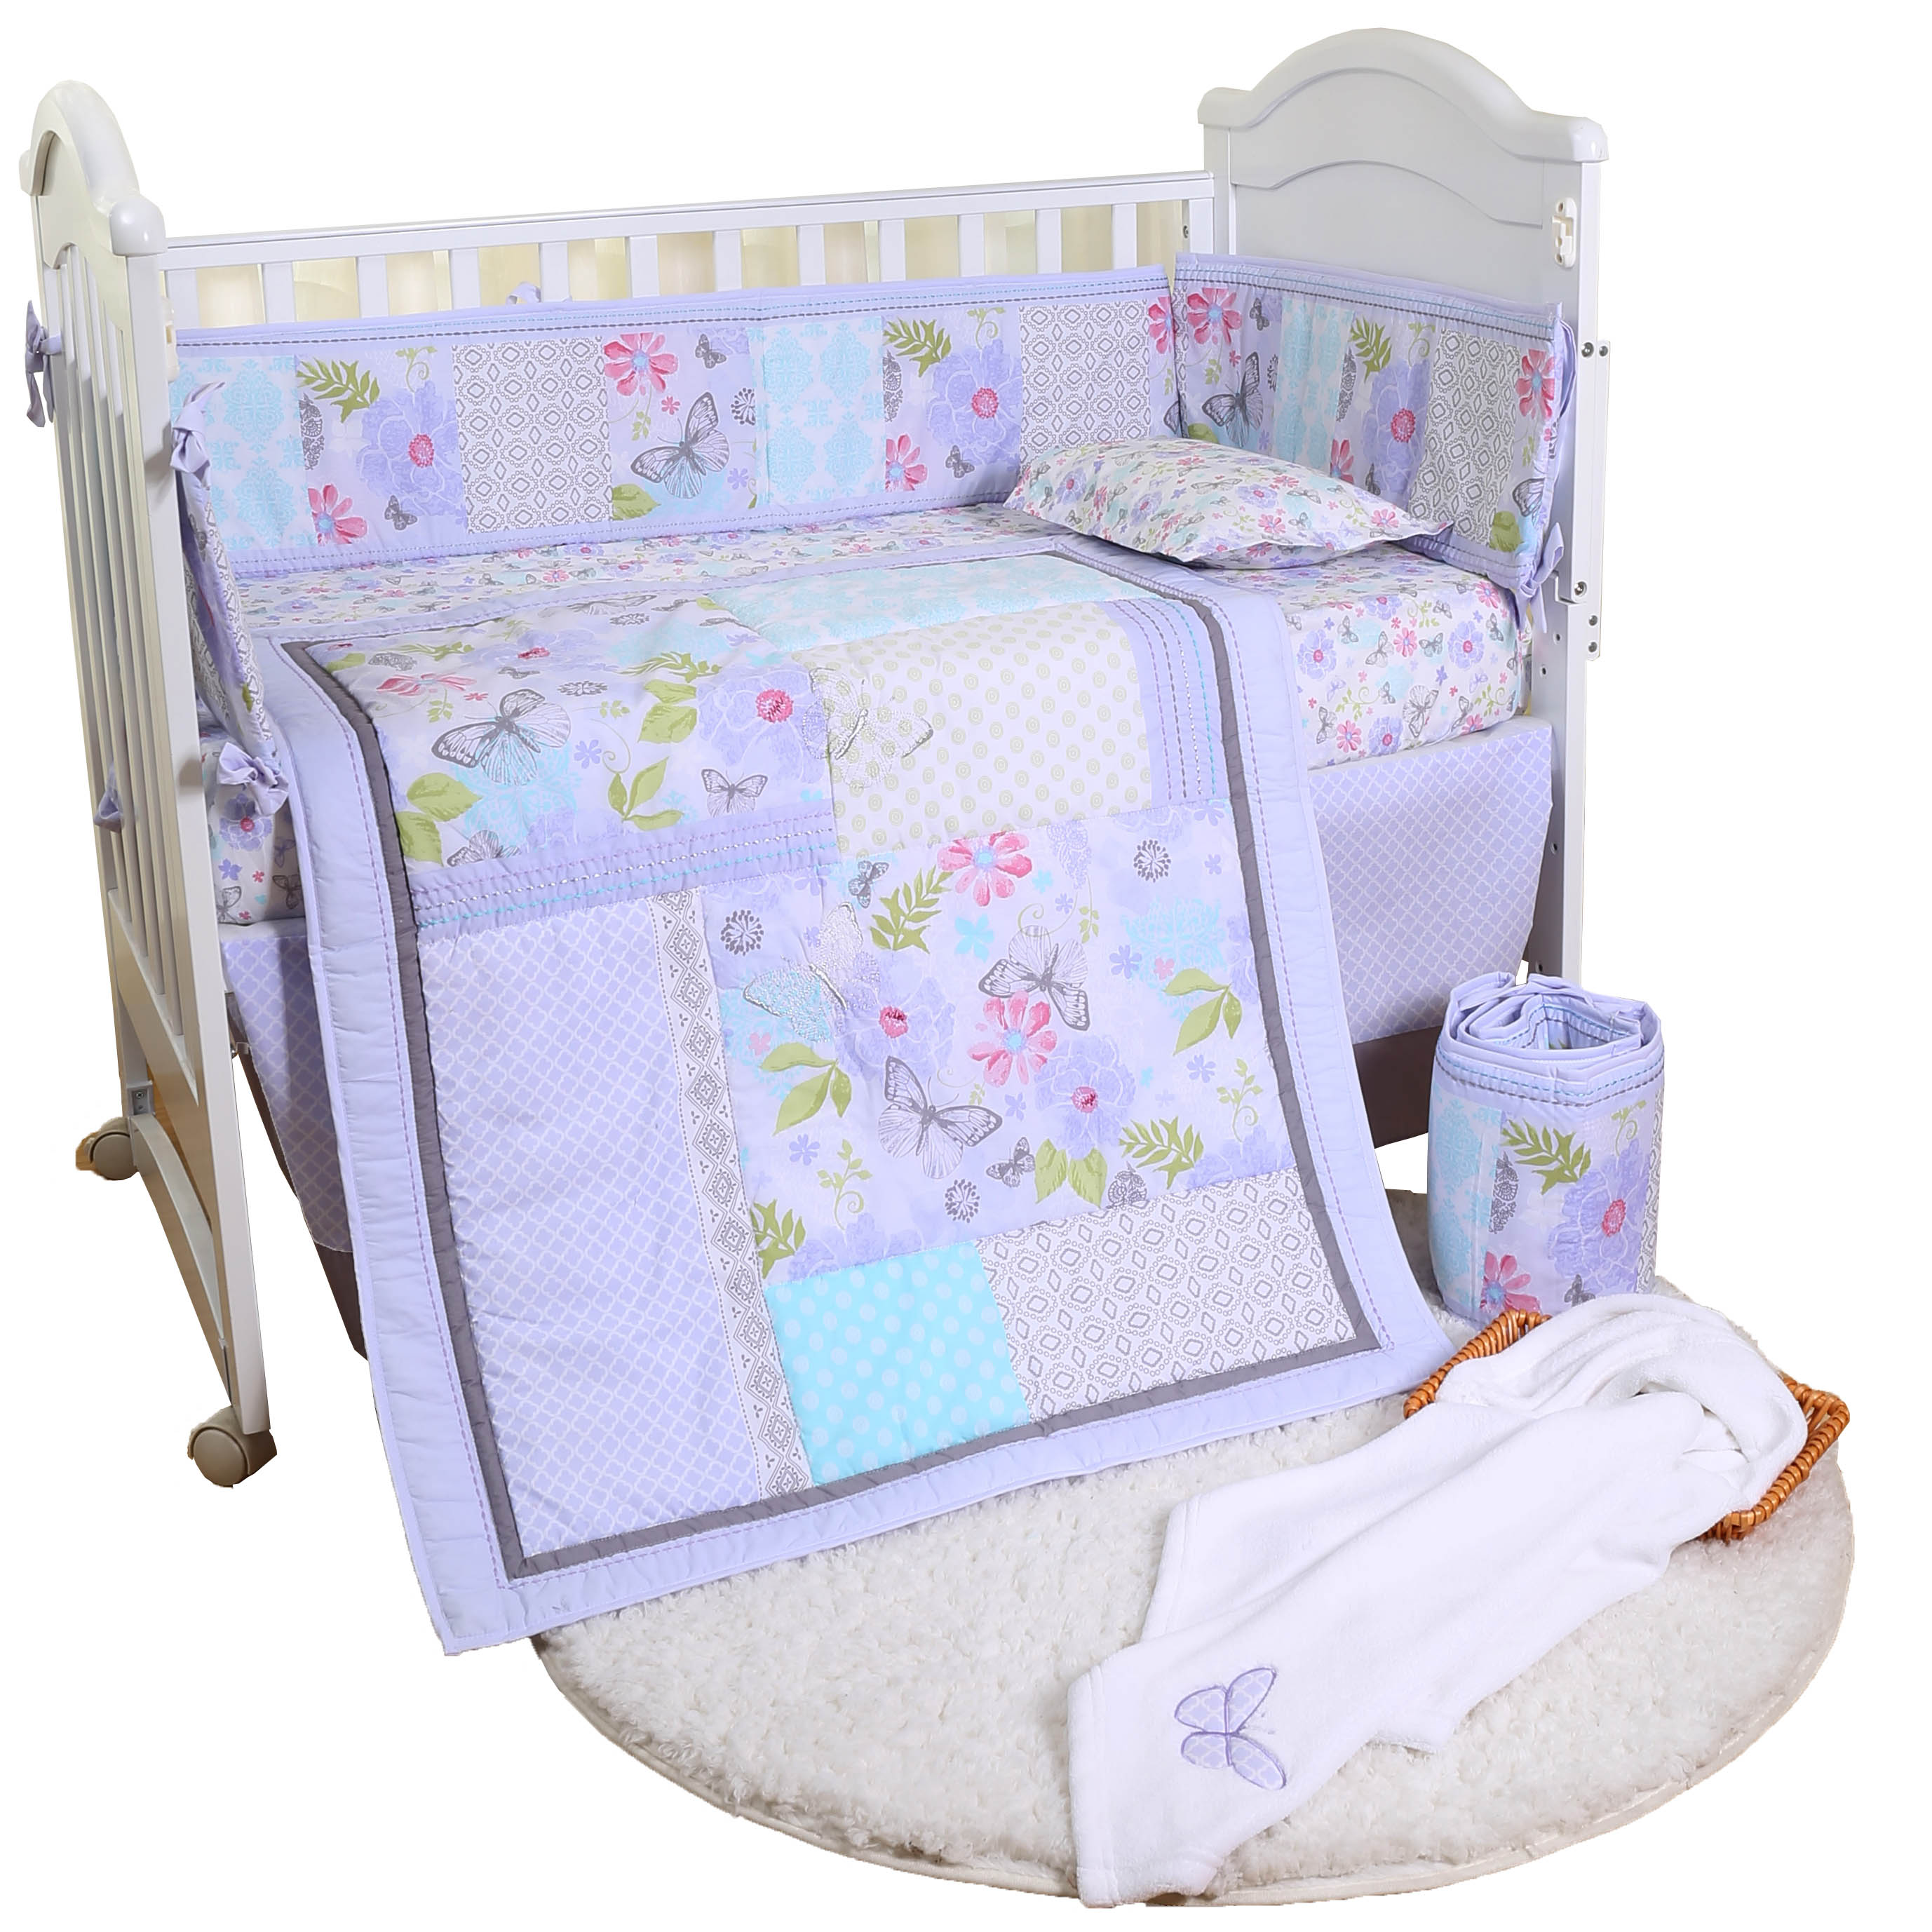 easy cleaning cute new manufactured competitive price applique baby bedding set